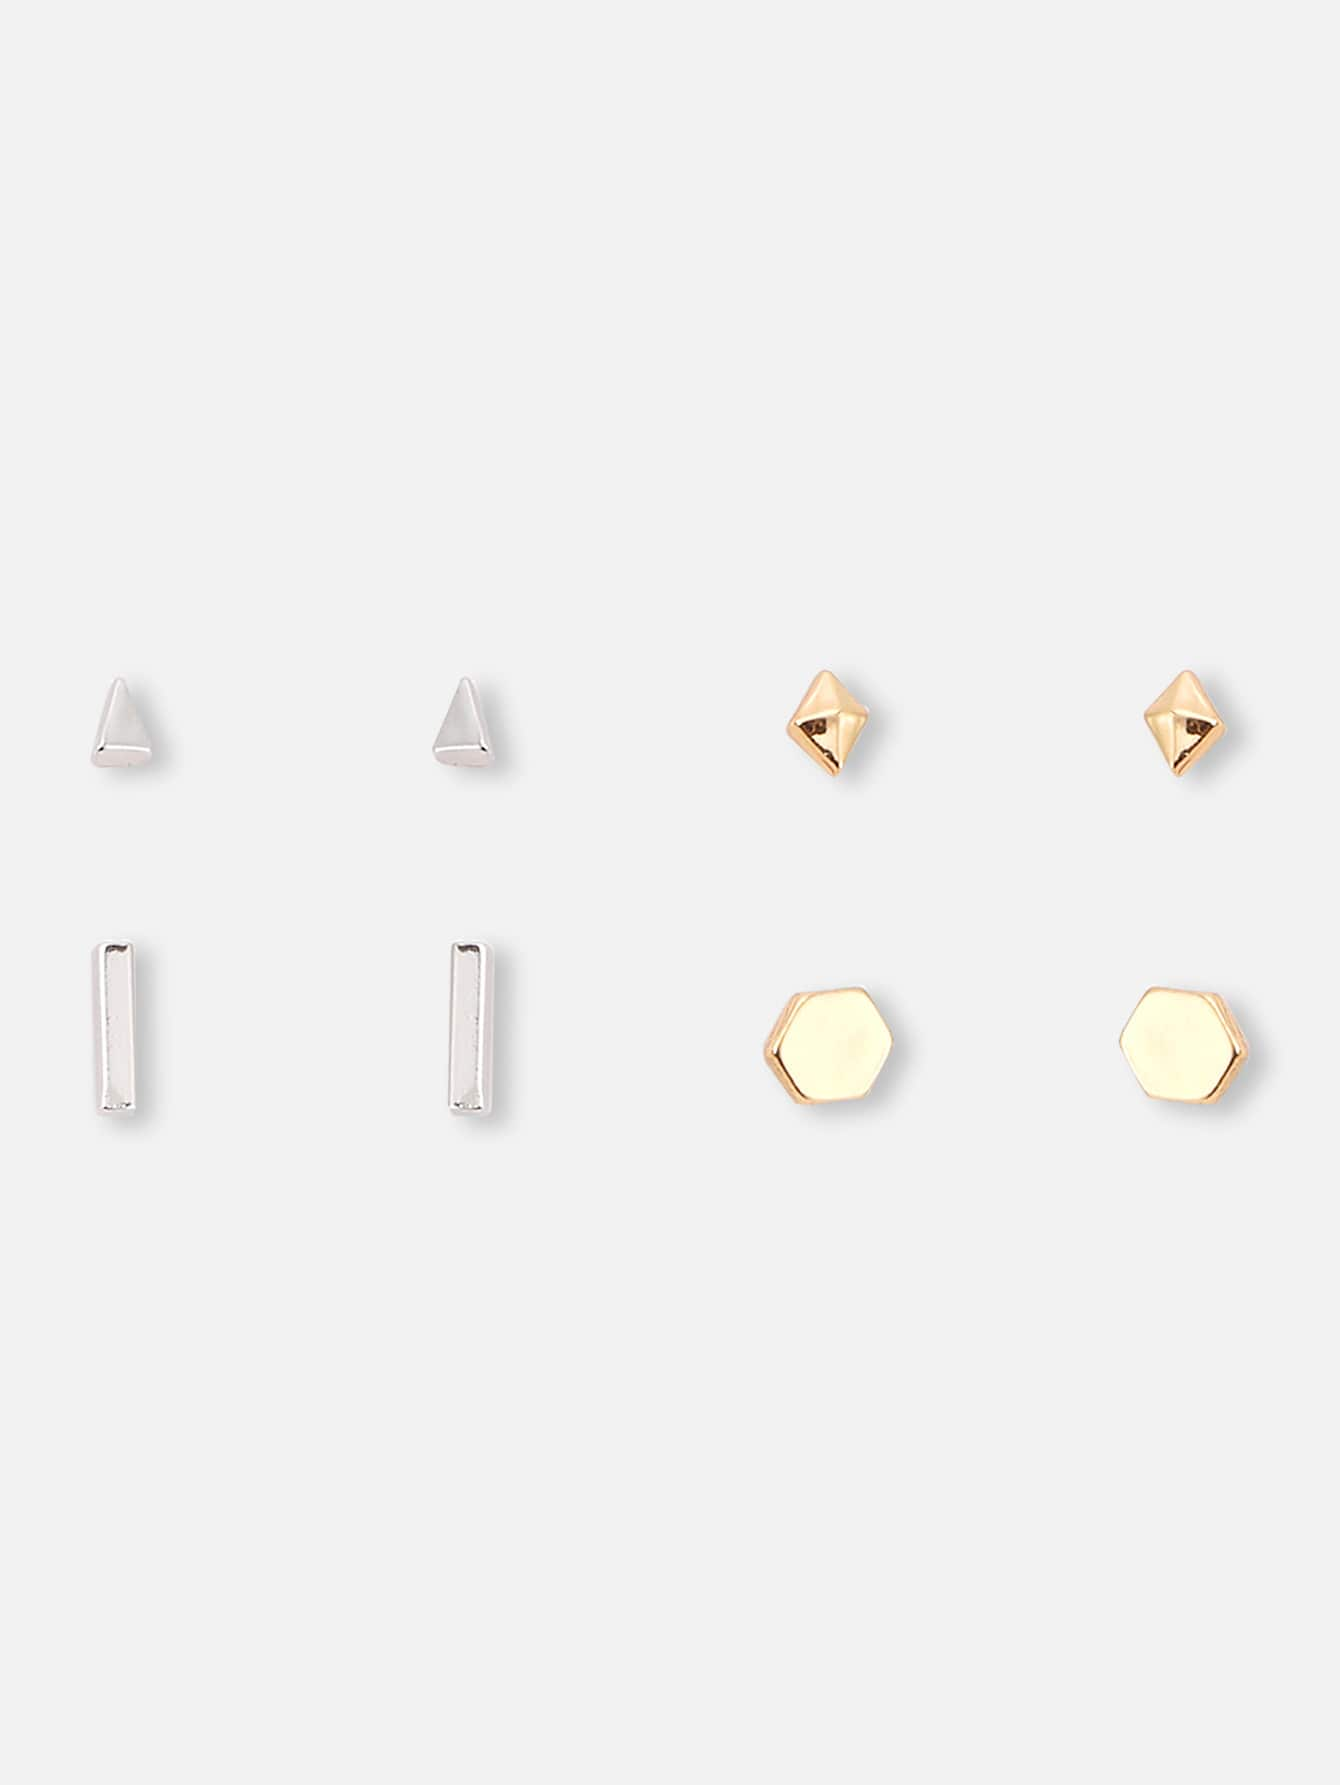 4pairs Multicolor Geometric Alloy Stud Earrings